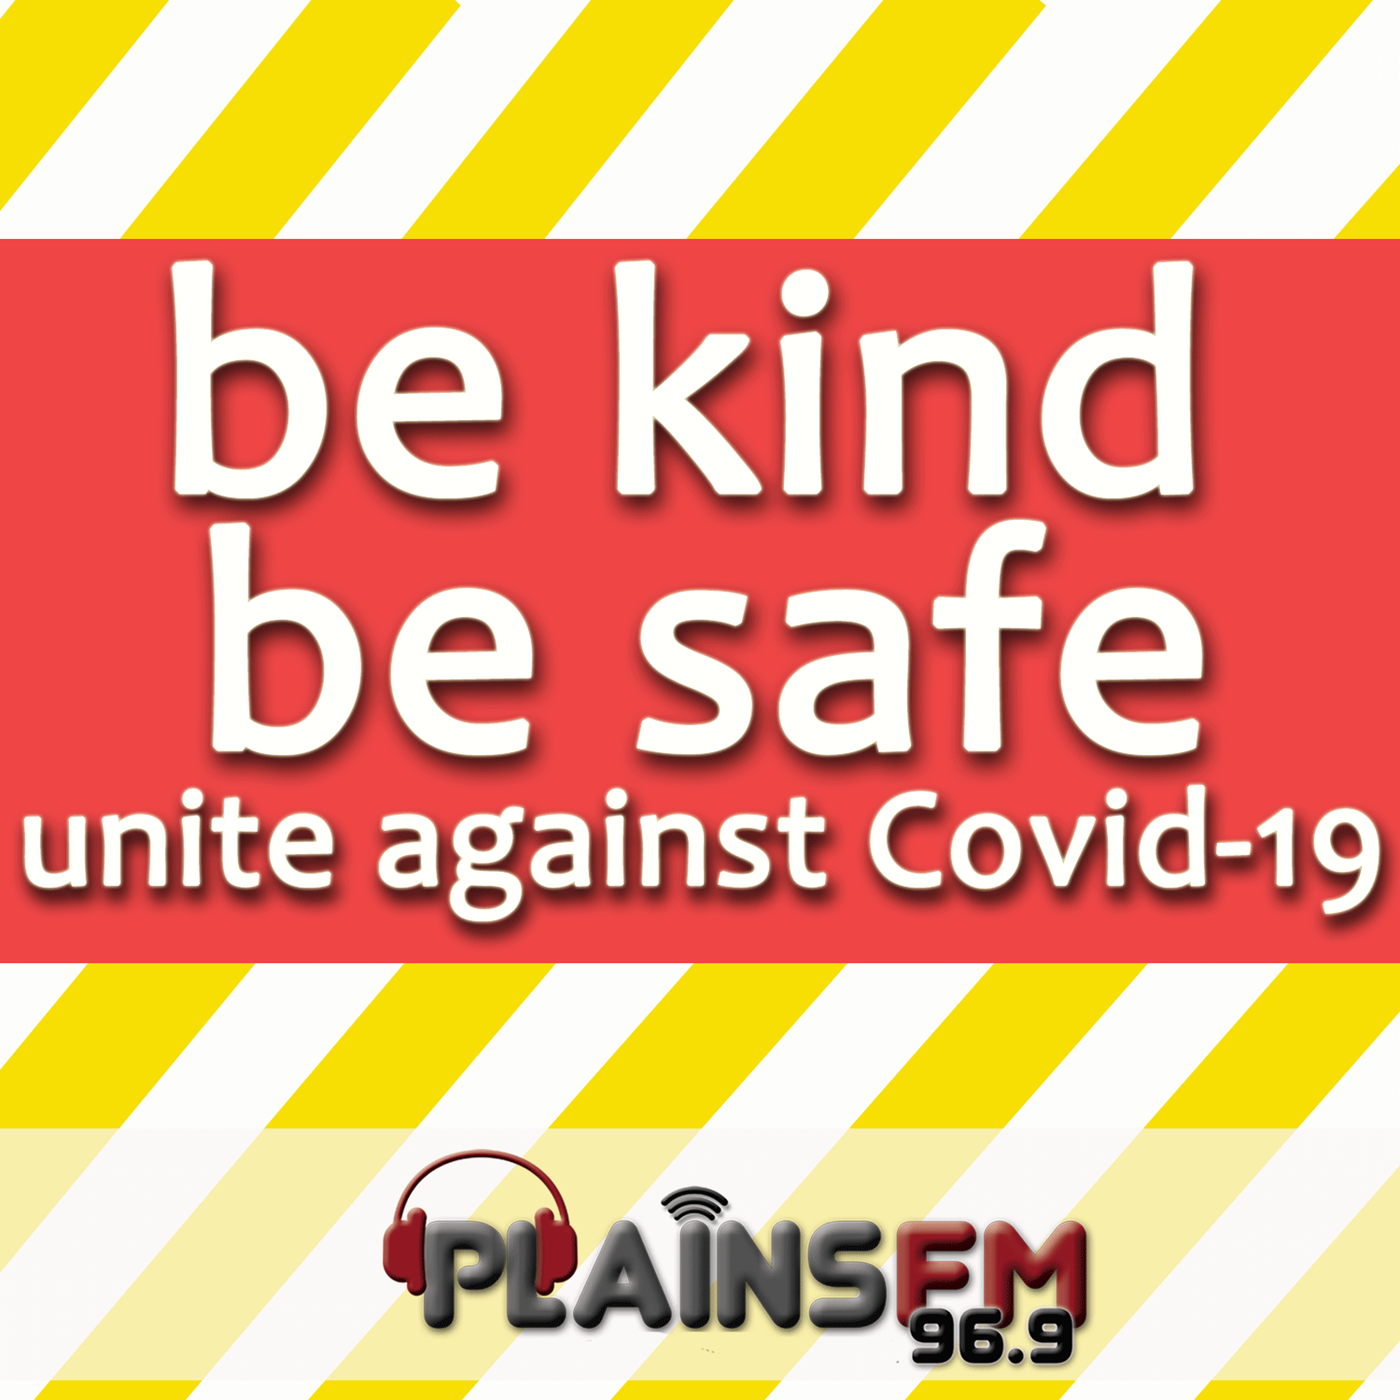 Be Kind, Be Safe: Unite Against Covid-19